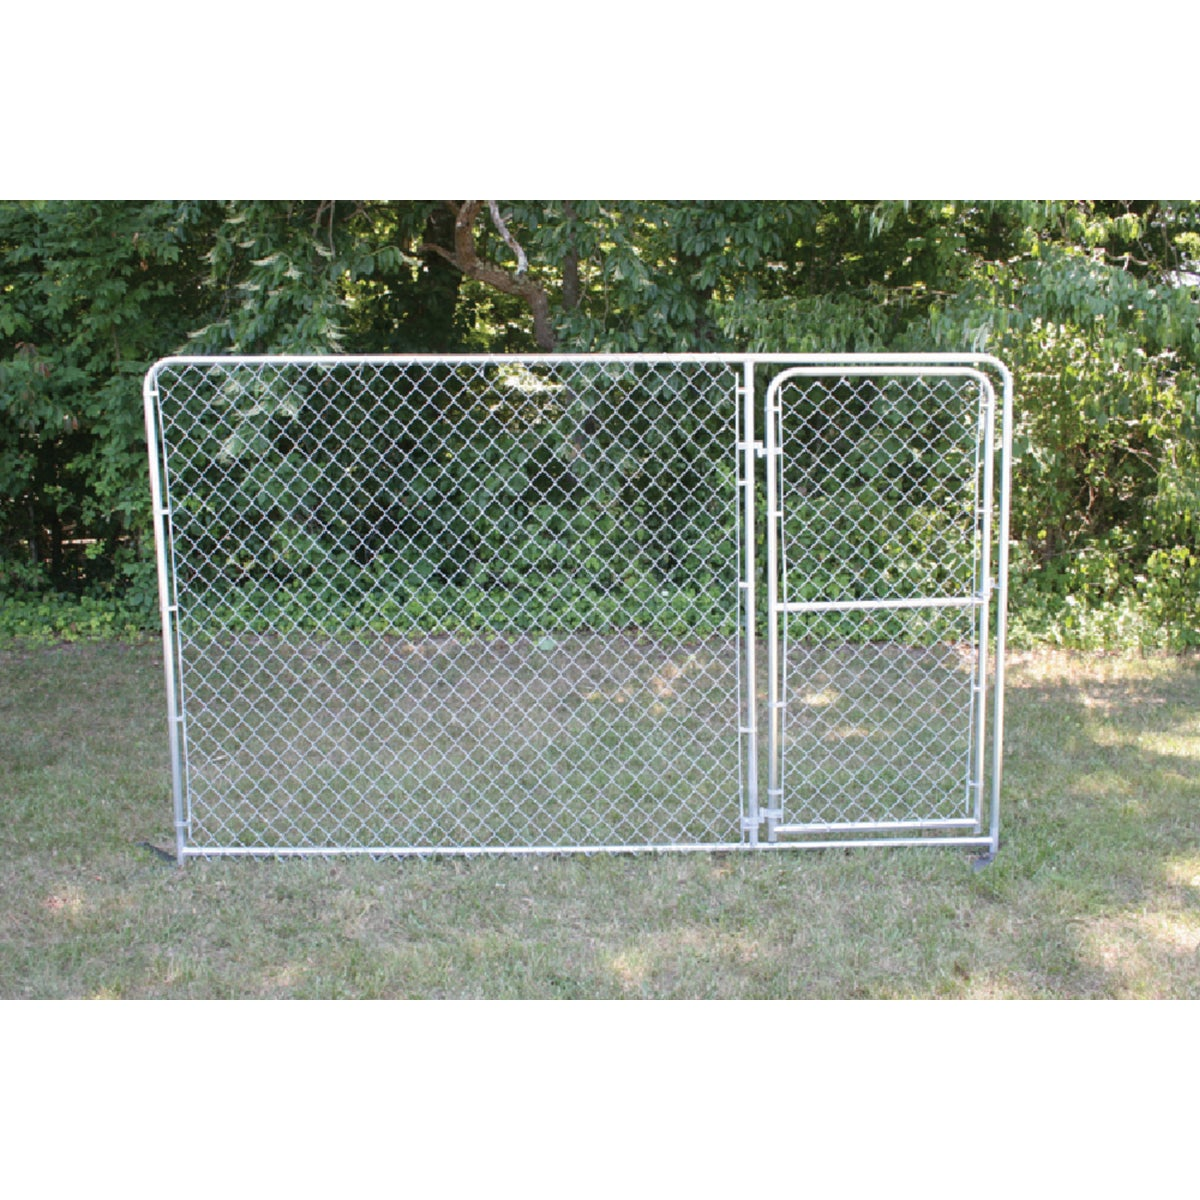 Fence Master 10X6 GATE KENNEL PANEL 201106